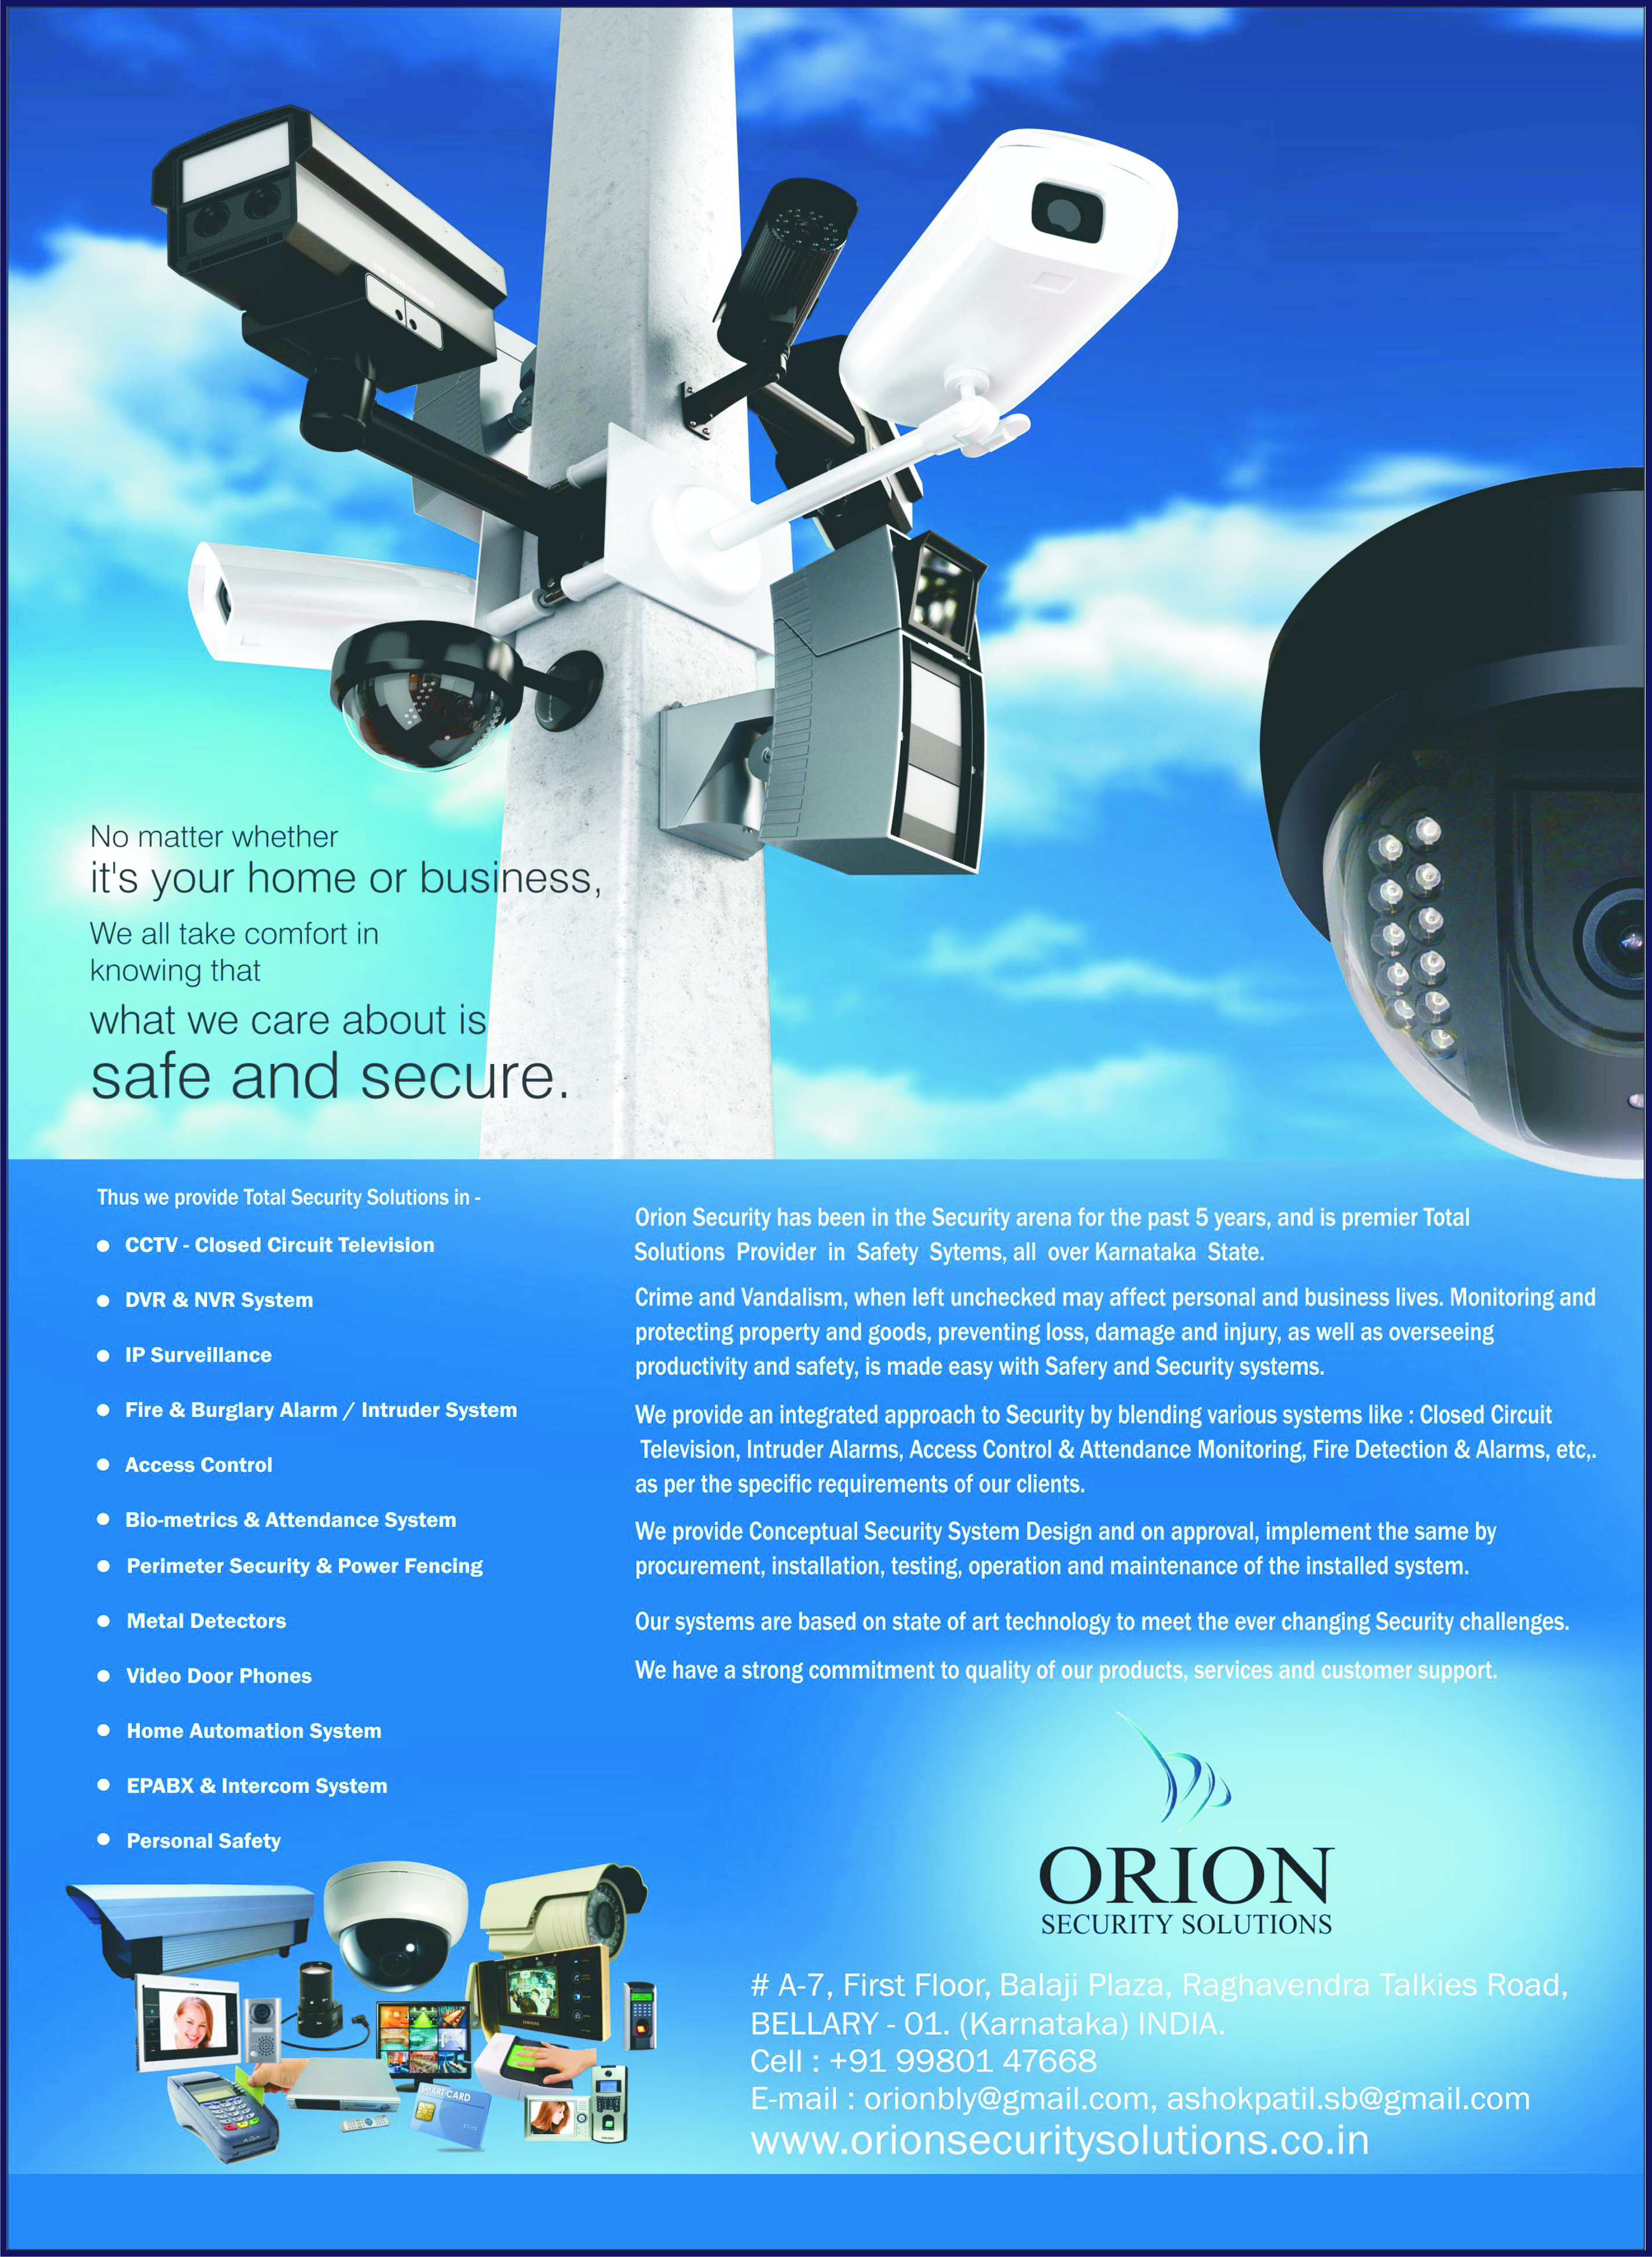 Orion Security Solutions